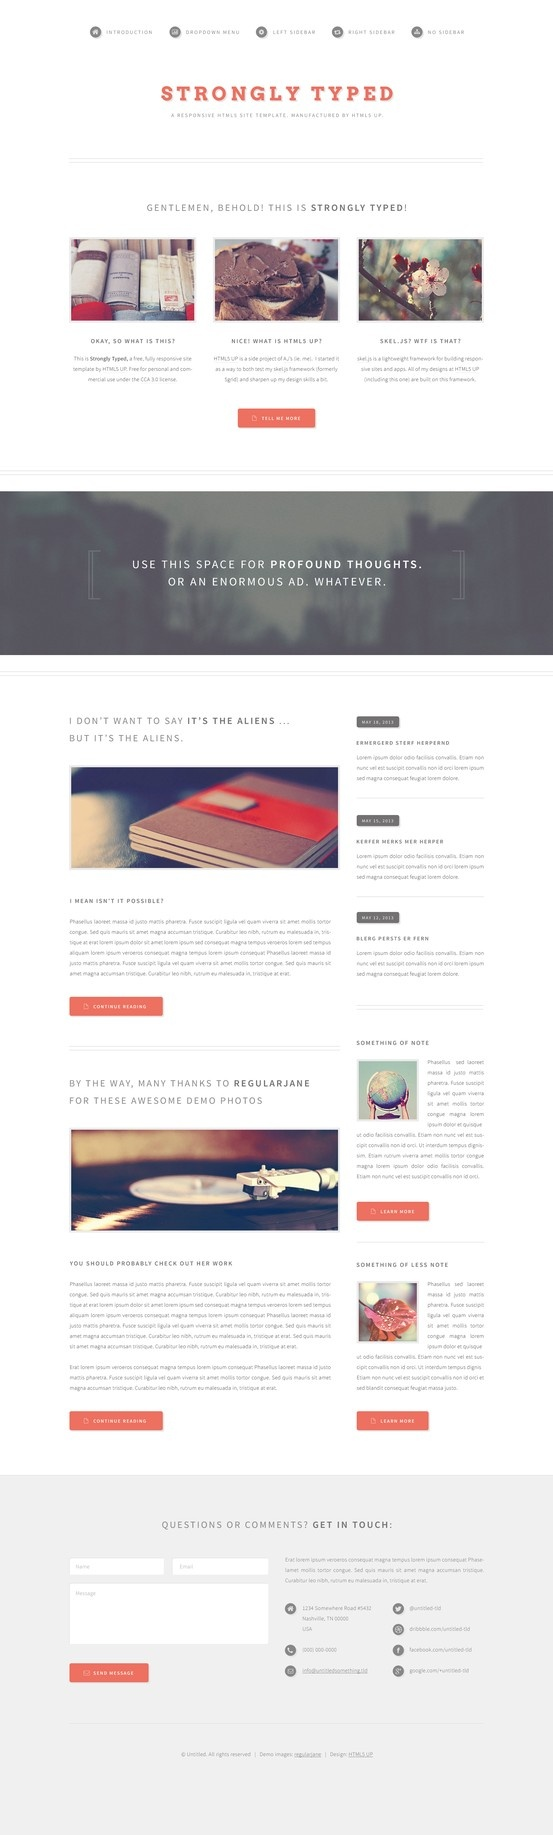 Strongly Typed - FREE Website HTML5 Template #html5 #website #webdesign #flat #template #design #retro #style #creative #free #freebie